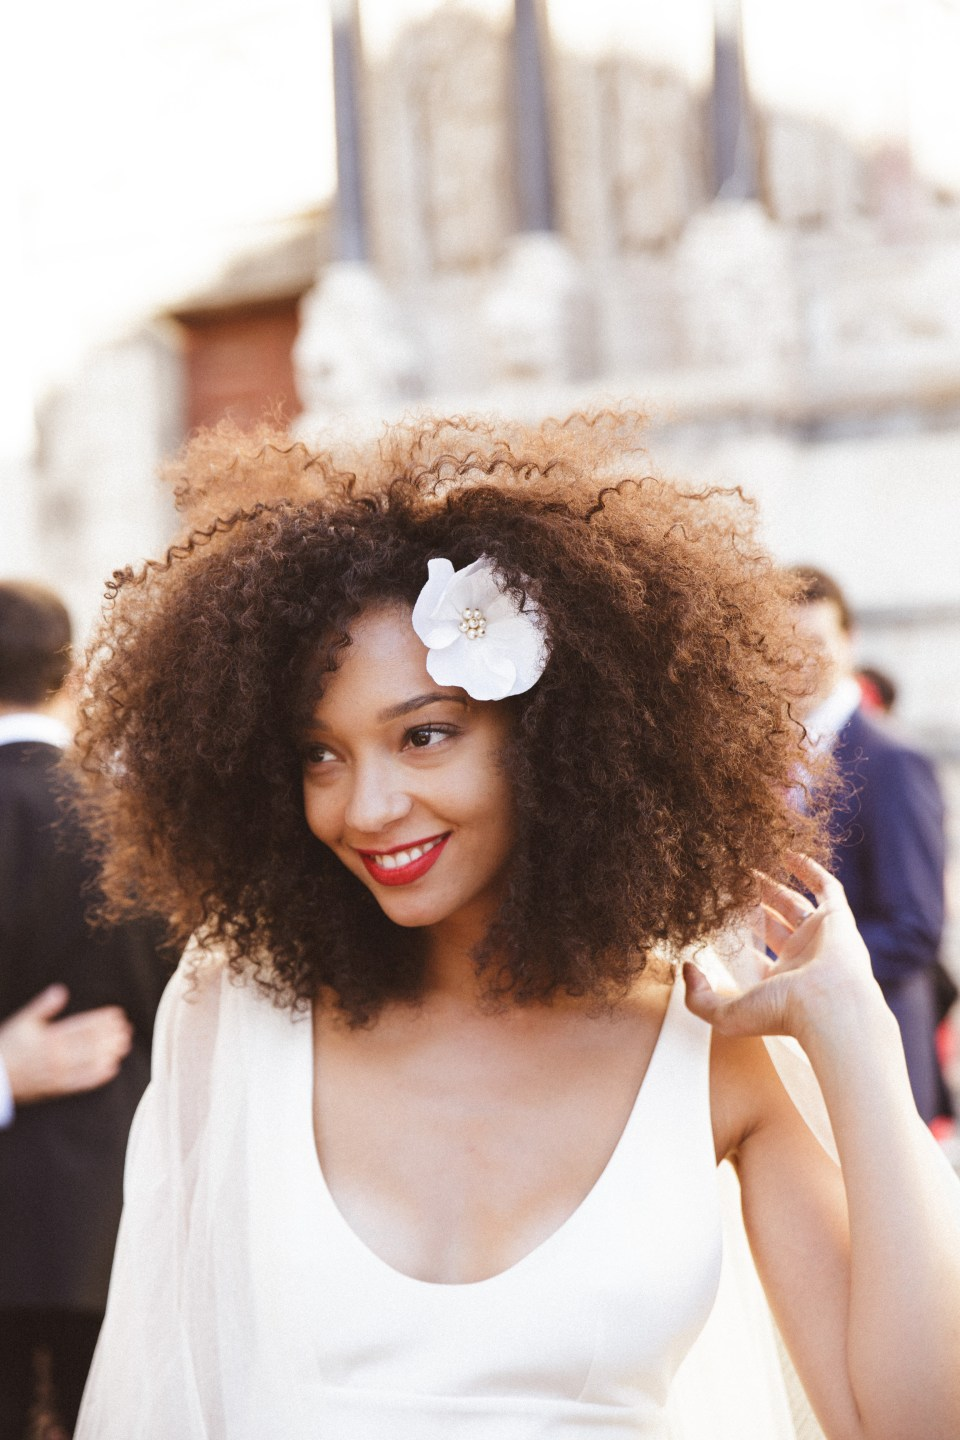 mercredie-mariage-maison-guillemette-pince-cheveux-dolce-big-beautiful-hair-voile-dentelle-calais-delphine-manivet-afro-bride-bridal-natural-hair-3c-curly